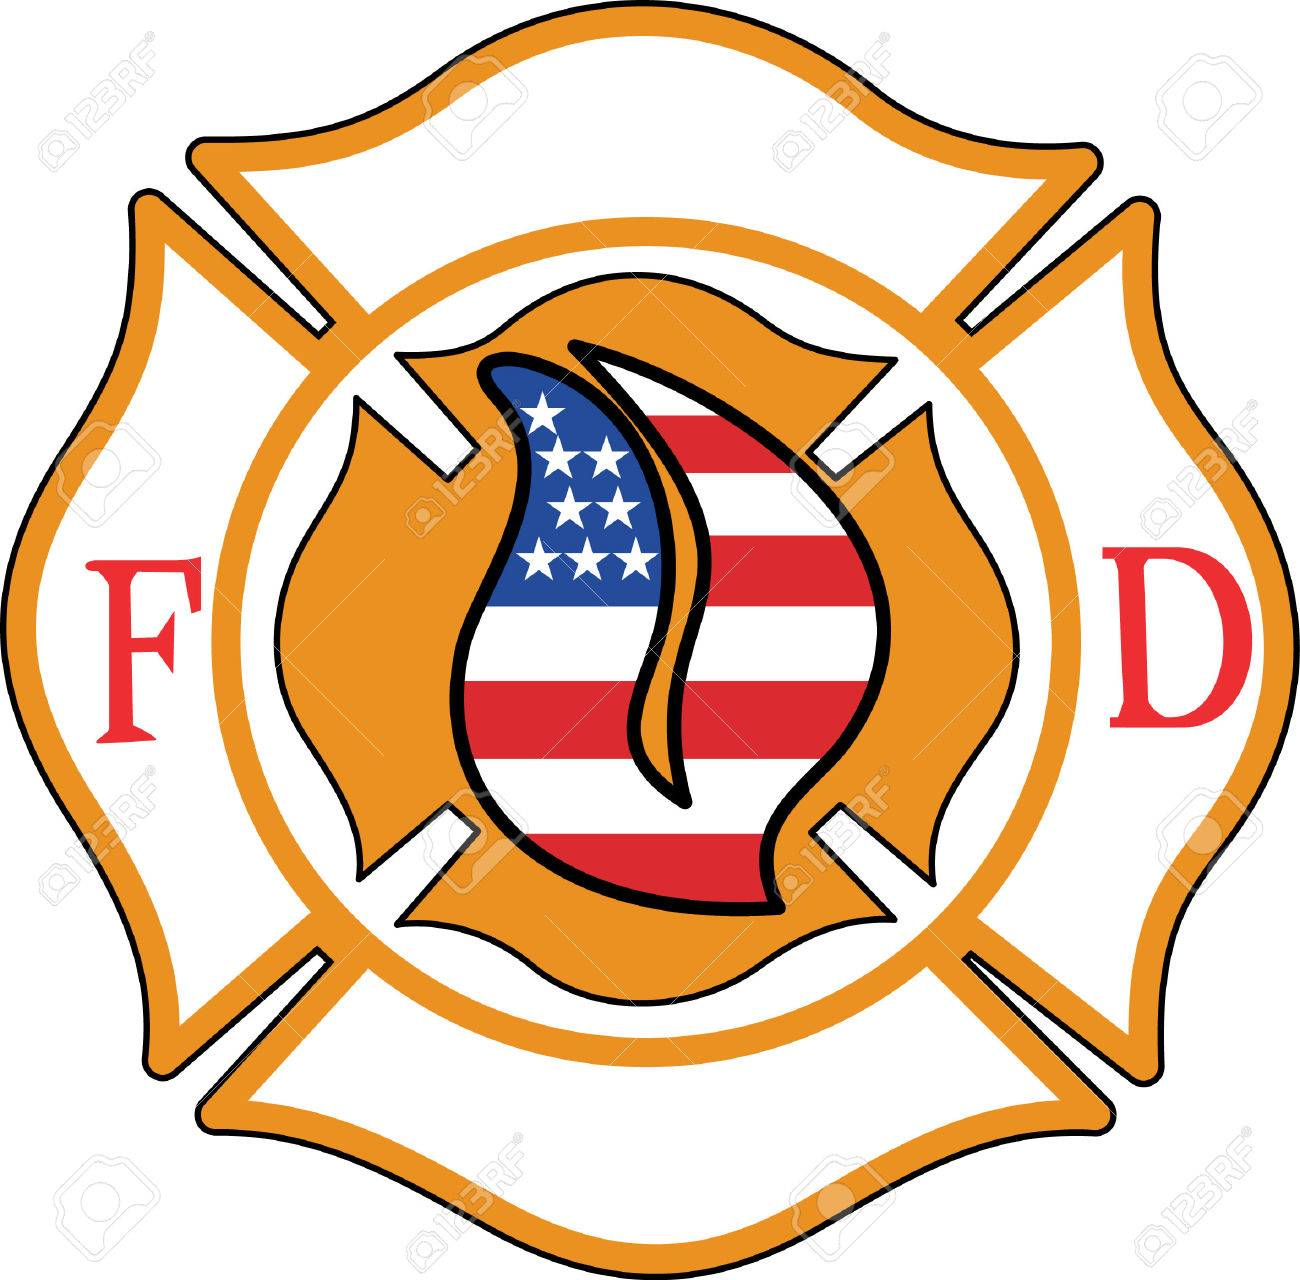 Customize gear for Fire Fighting and rescue professionals with this design on t-shirts, shirts, hats and more. - 51224595